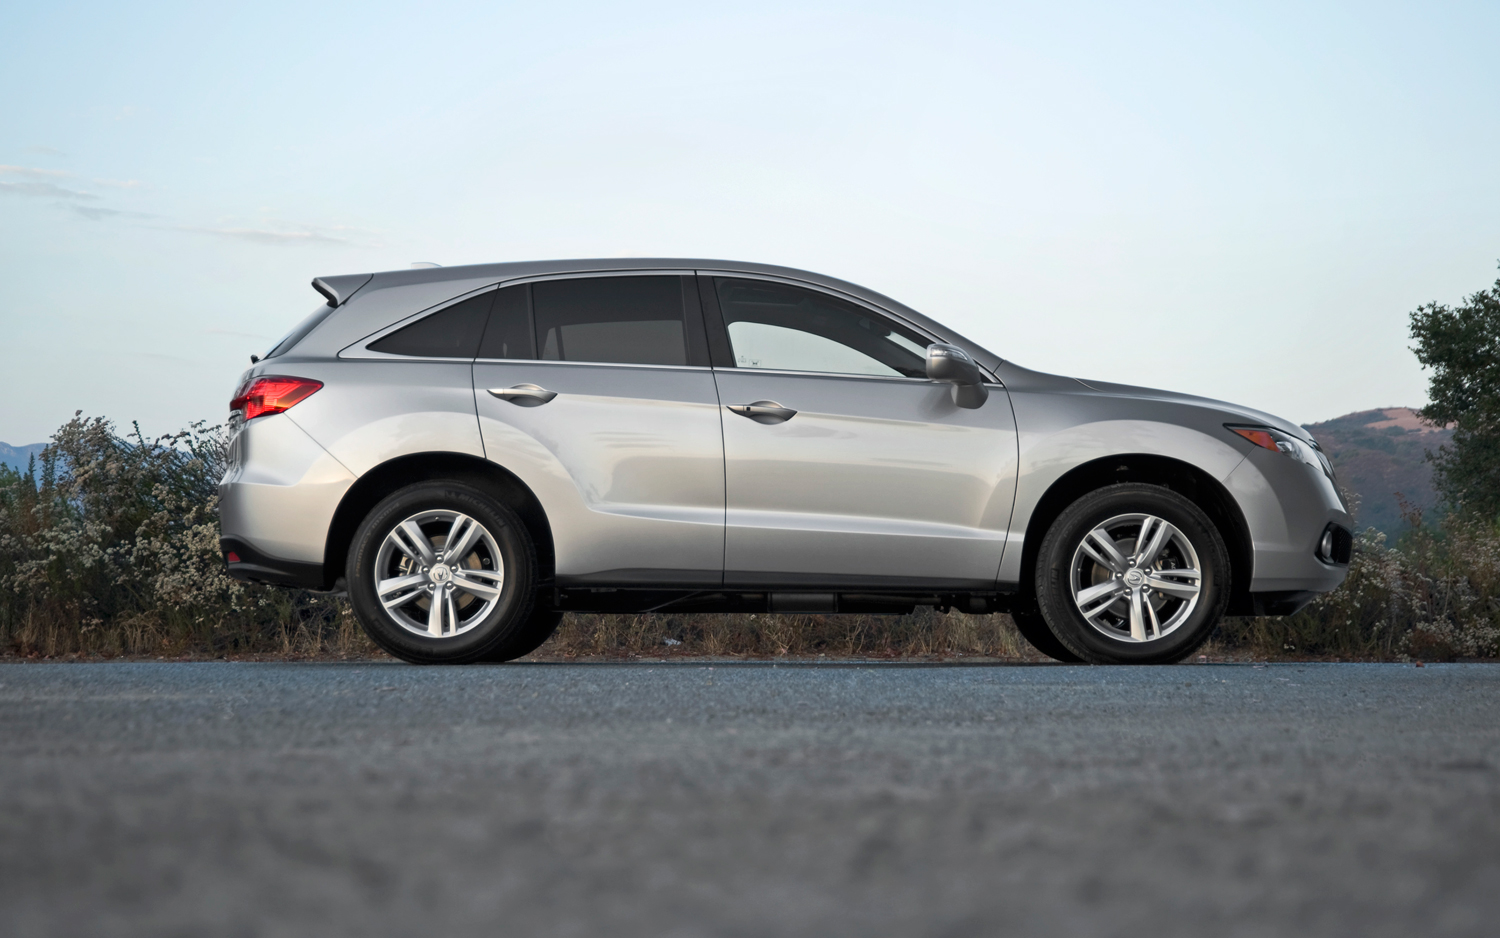 acura rdx images #15